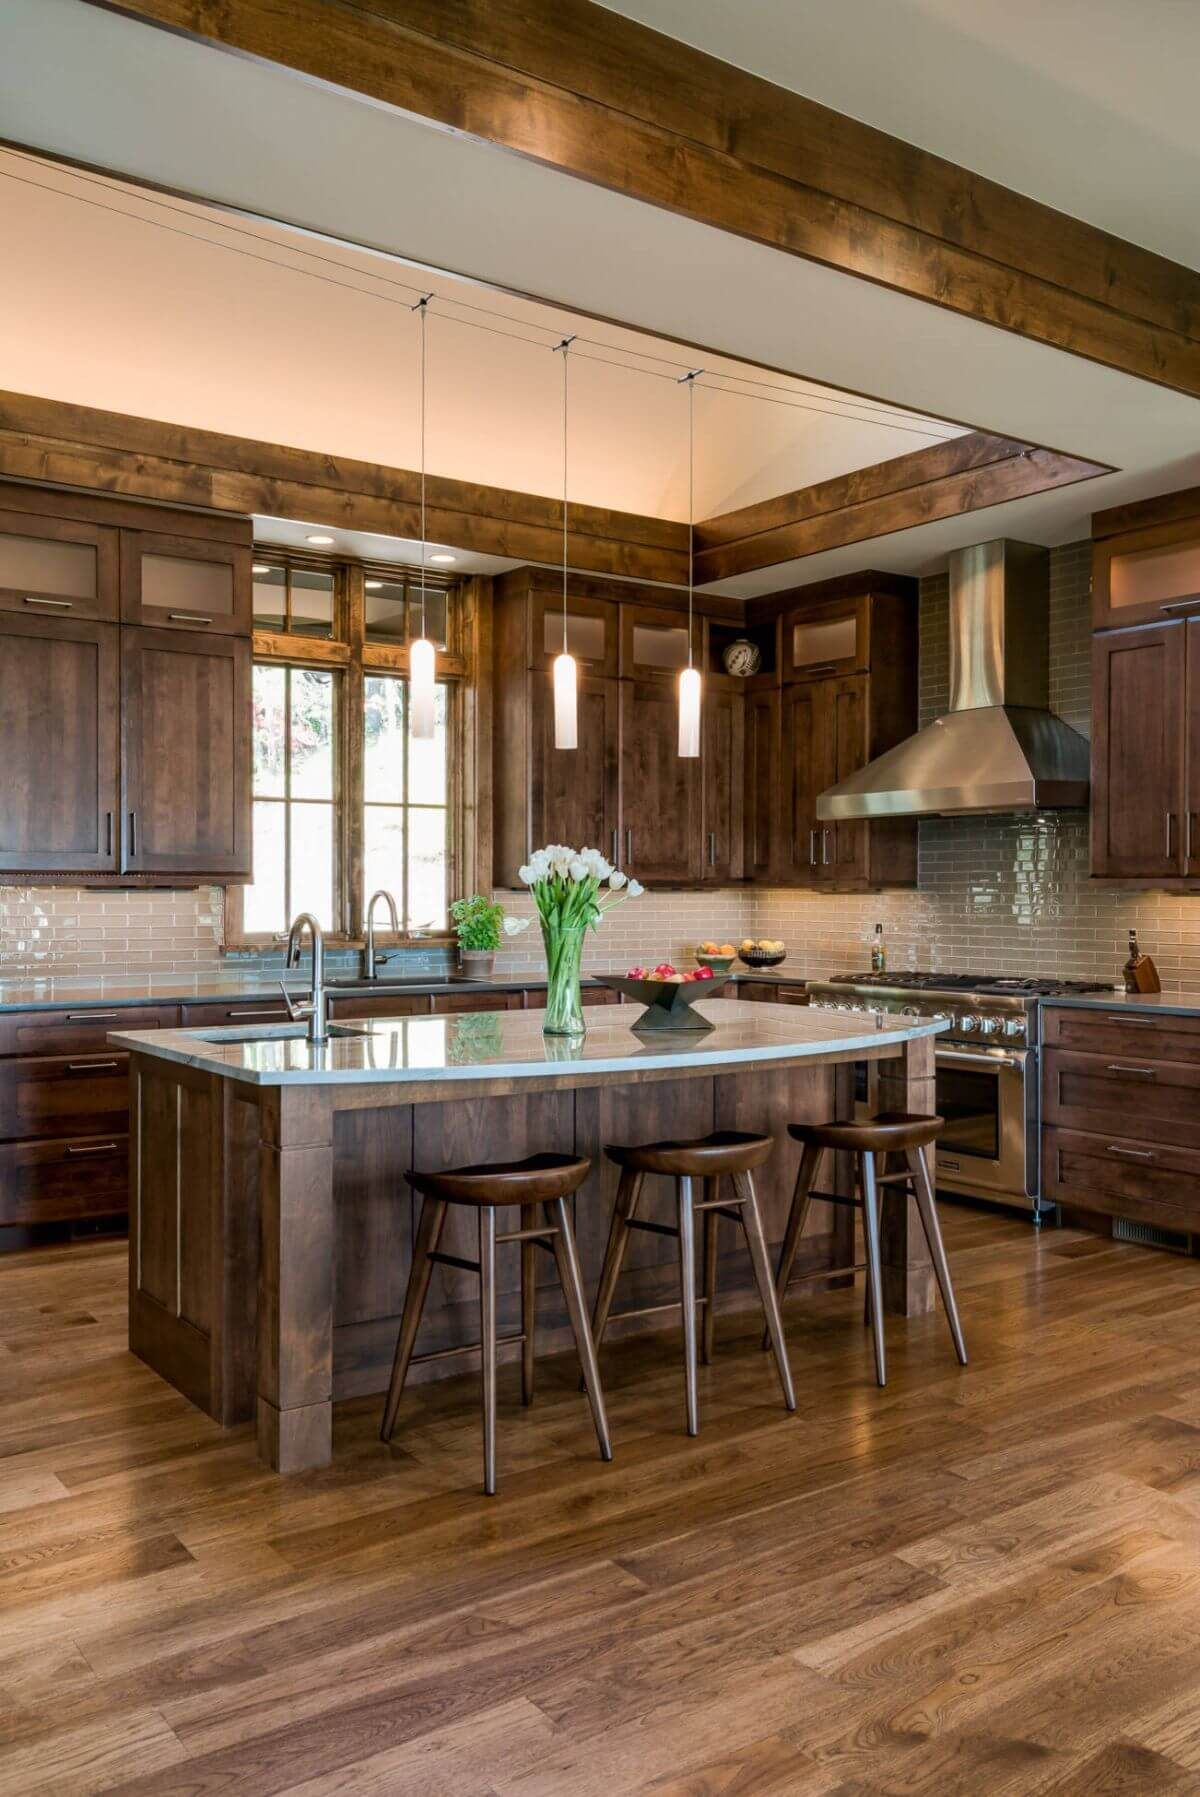 30+ Ideas of Reclaimed Barn Wood Kitchen Island #rustickitchens